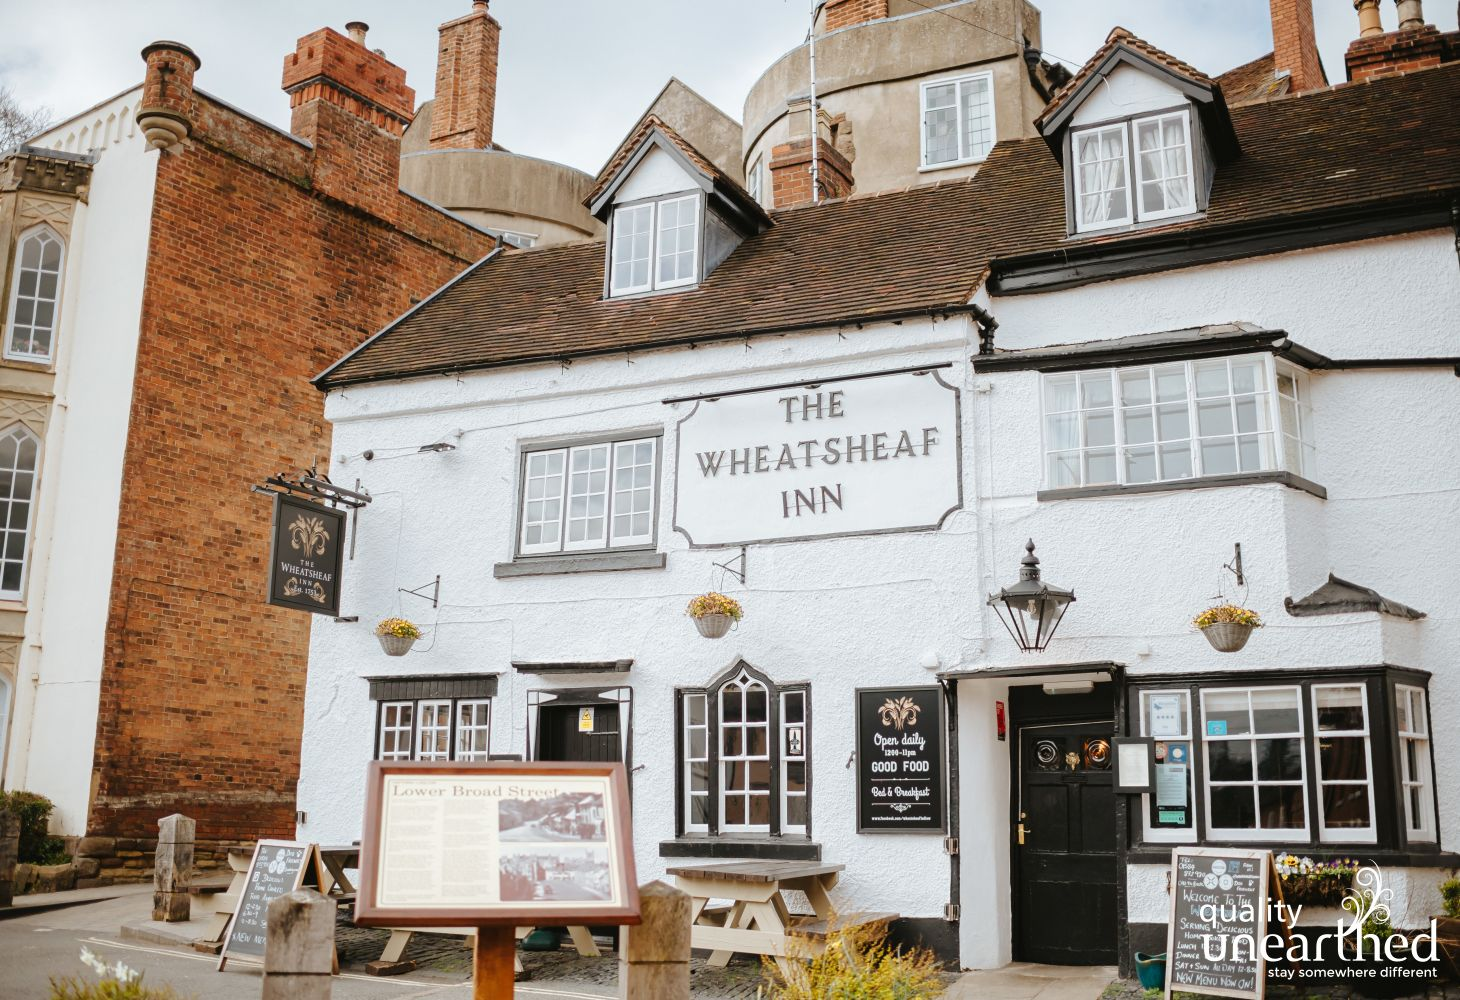 The Wheatsheaf Inn and Pub in Ludlow, only 6 miles from the geodome